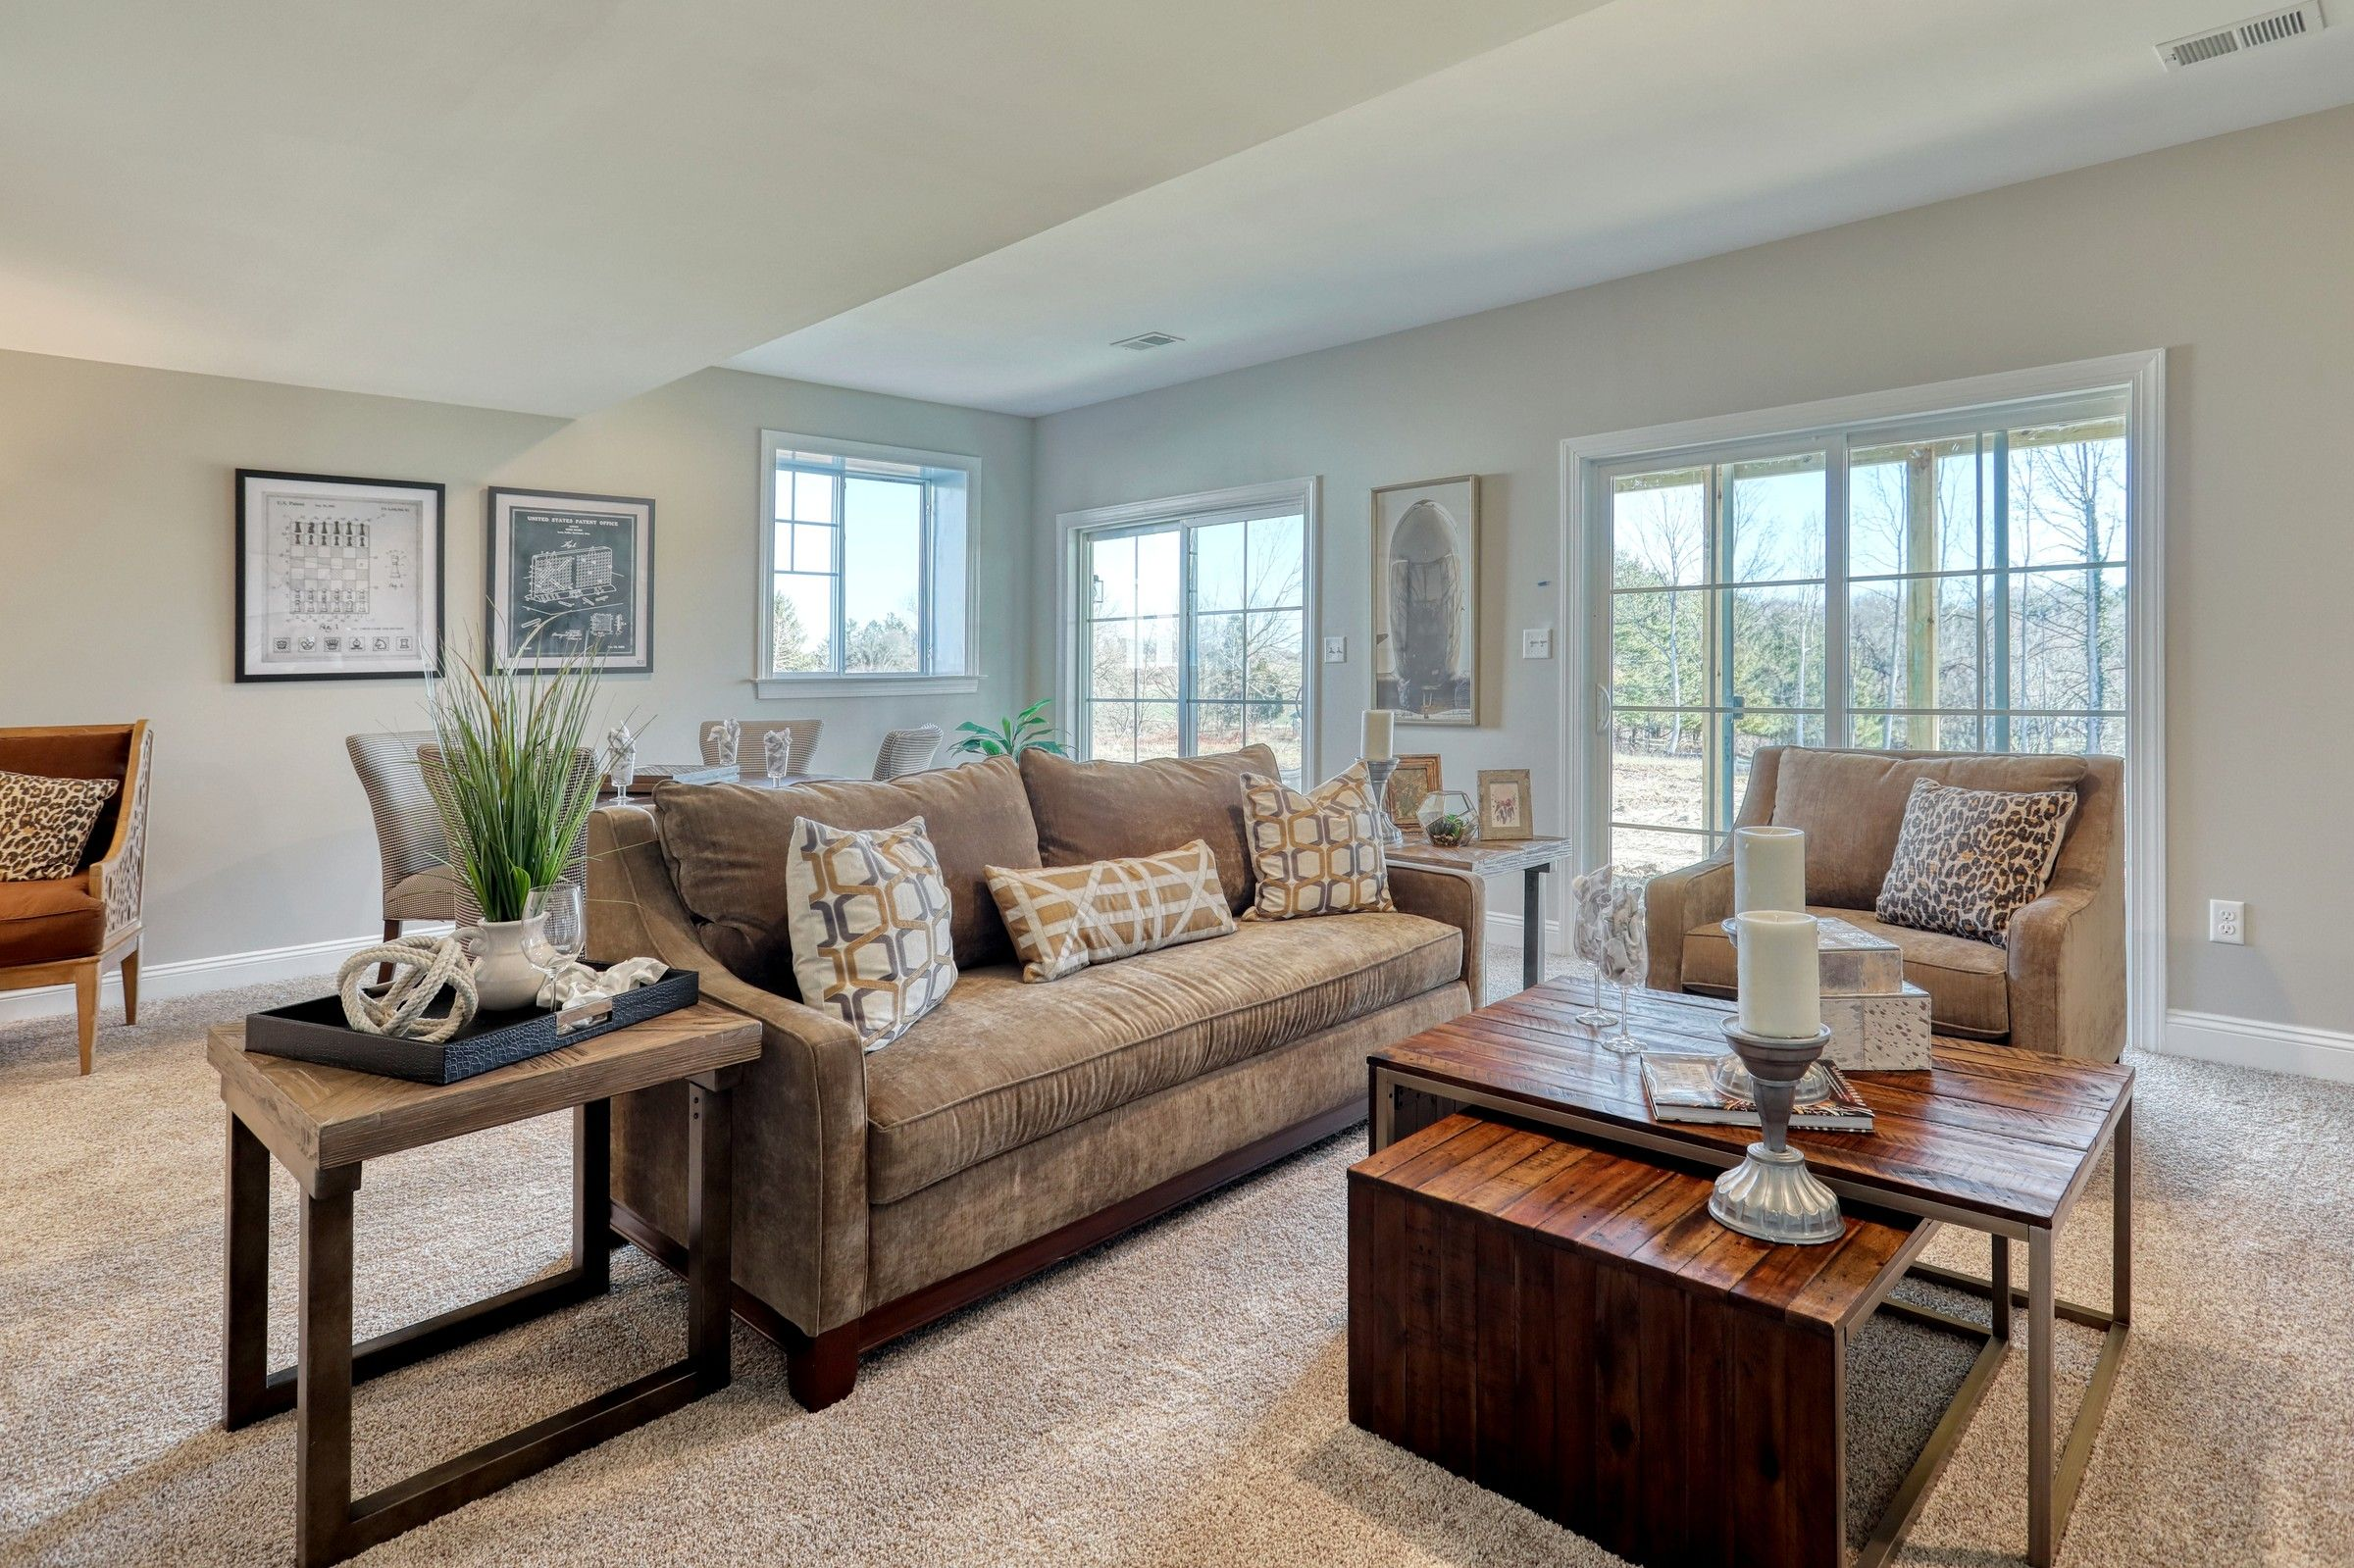 Living Area featured in the Ethan Manor By Keystone Custom Homes in Baltimore, MD